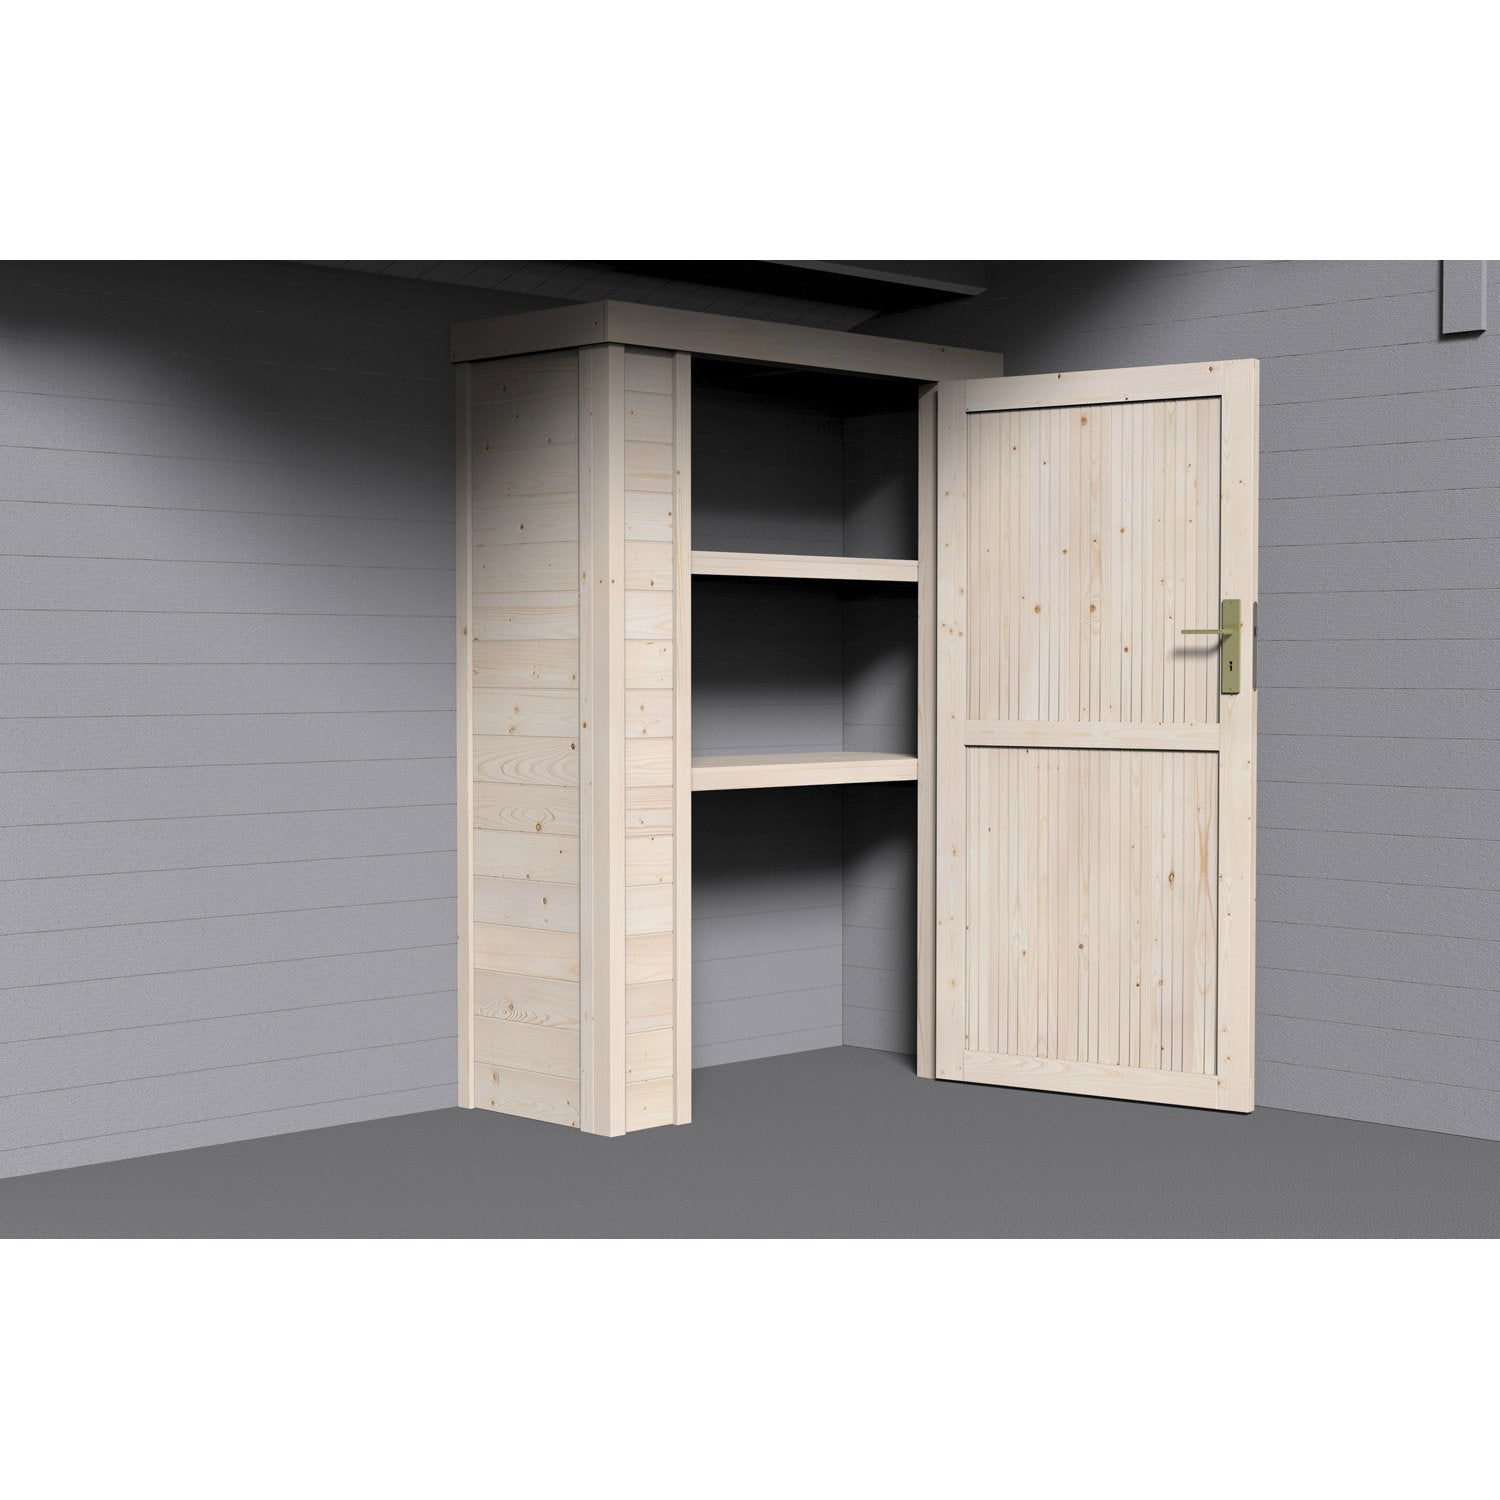 armoire en bois pour abri x x cm leroy merlin. Black Bedroom Furniture Sets. Home Design Ideas